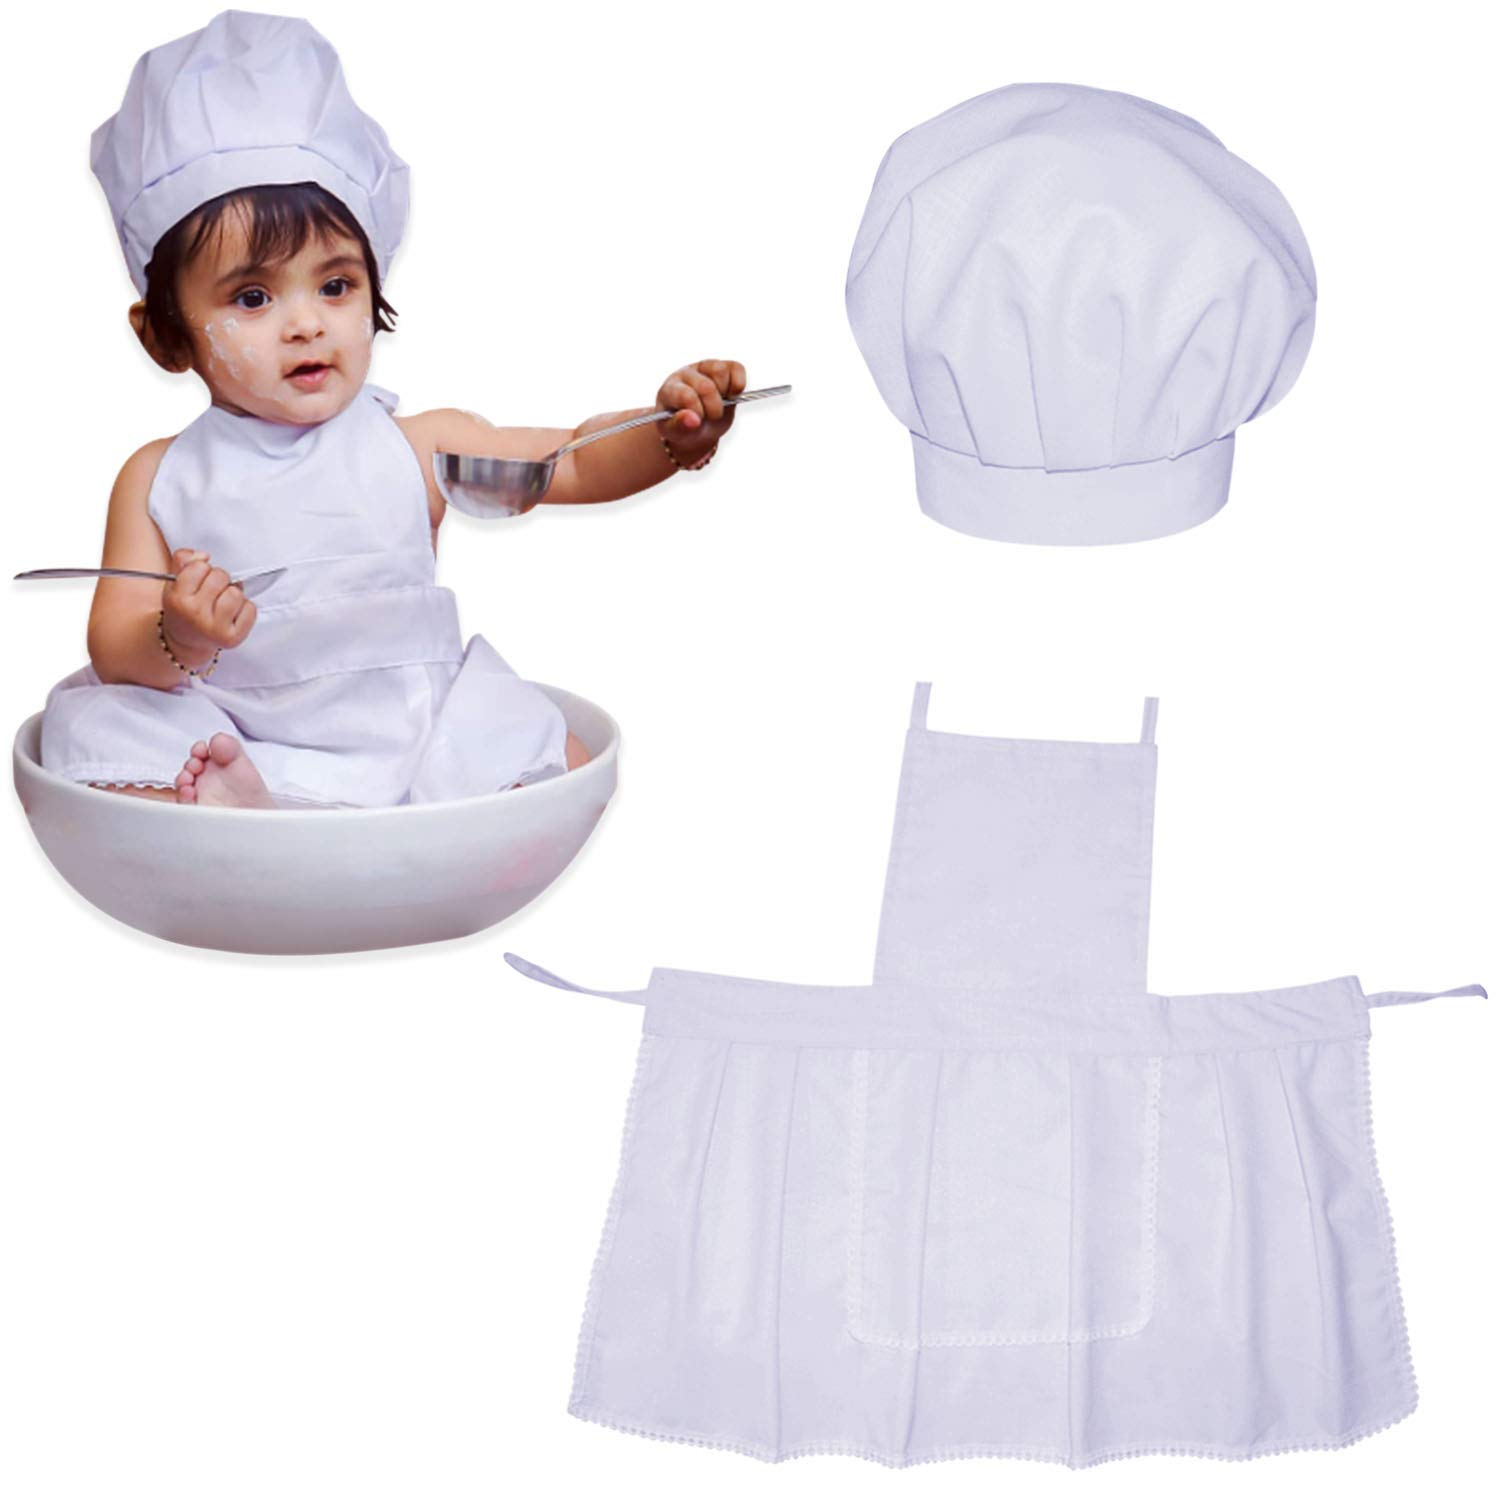 Cute Baby White Cook Cheff Hat Apron Child Costume Photos Props for 0~12 Months